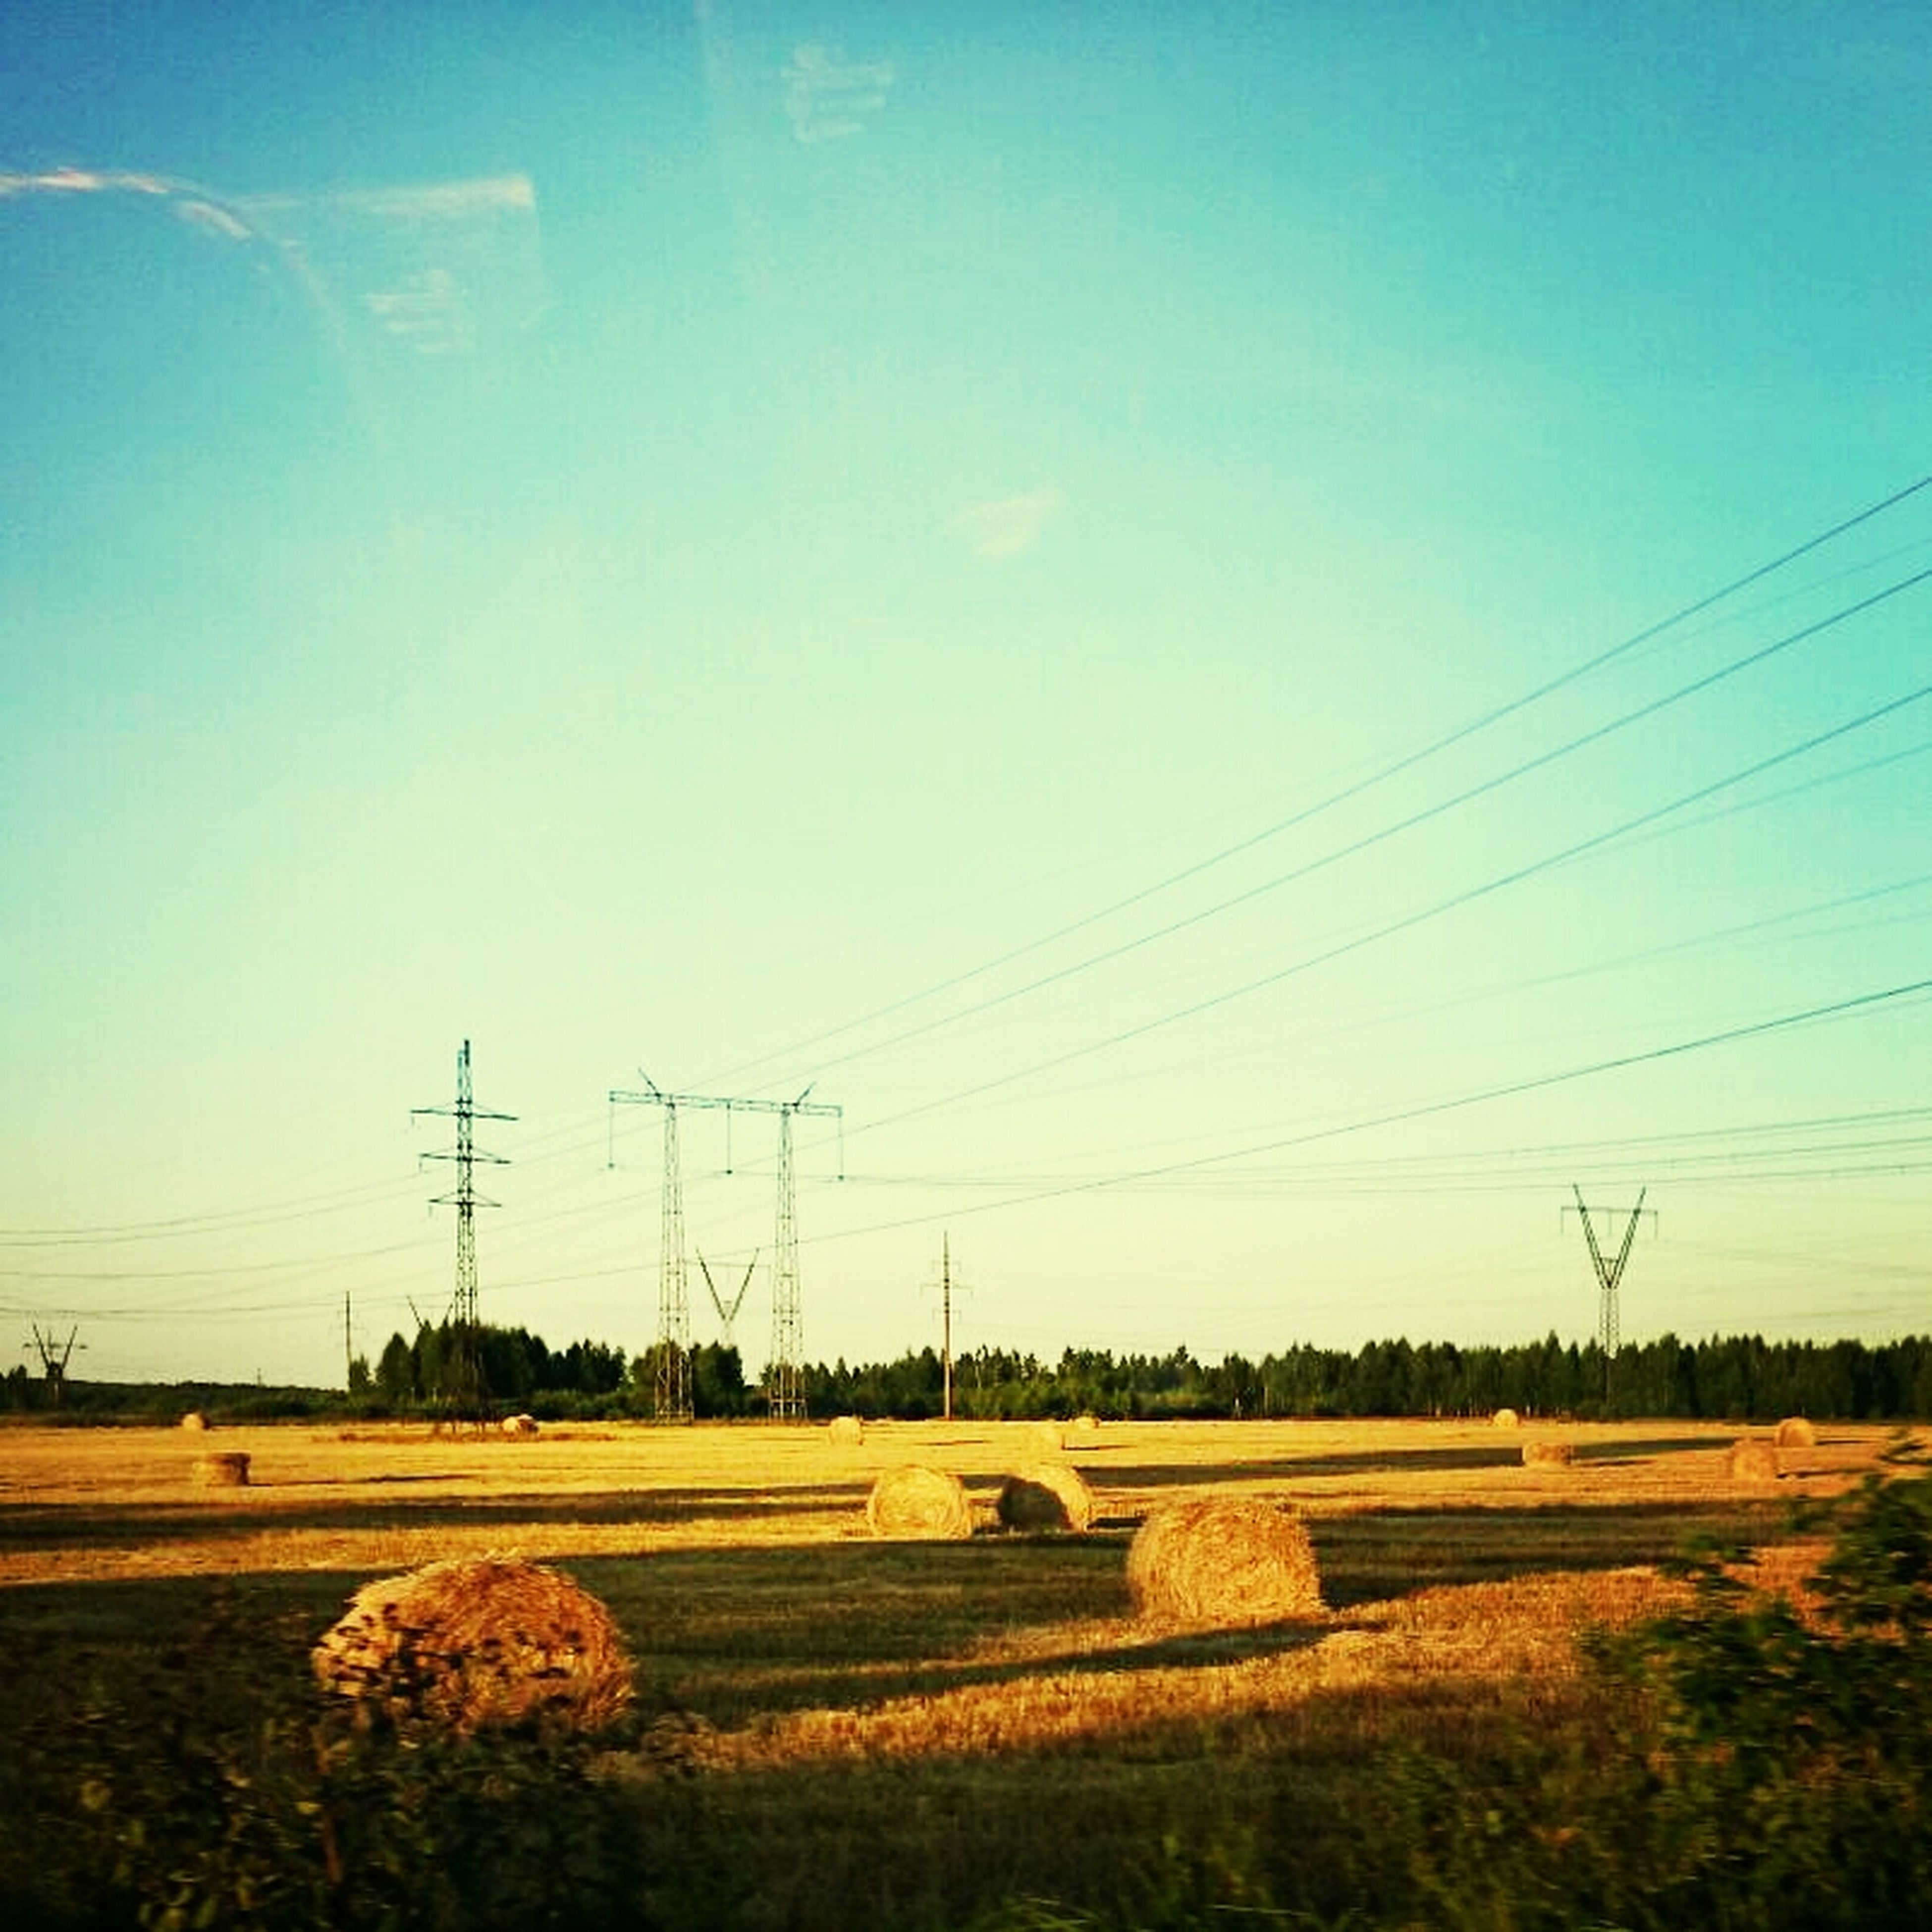 power line, electricity pylon, power supply, fuel and power generation, electricity, field, landscape, rural scene, connection, cable, blue, clear sky, technology, agriculture, sky, farm, nature, tranquil scene, tranquility, grass